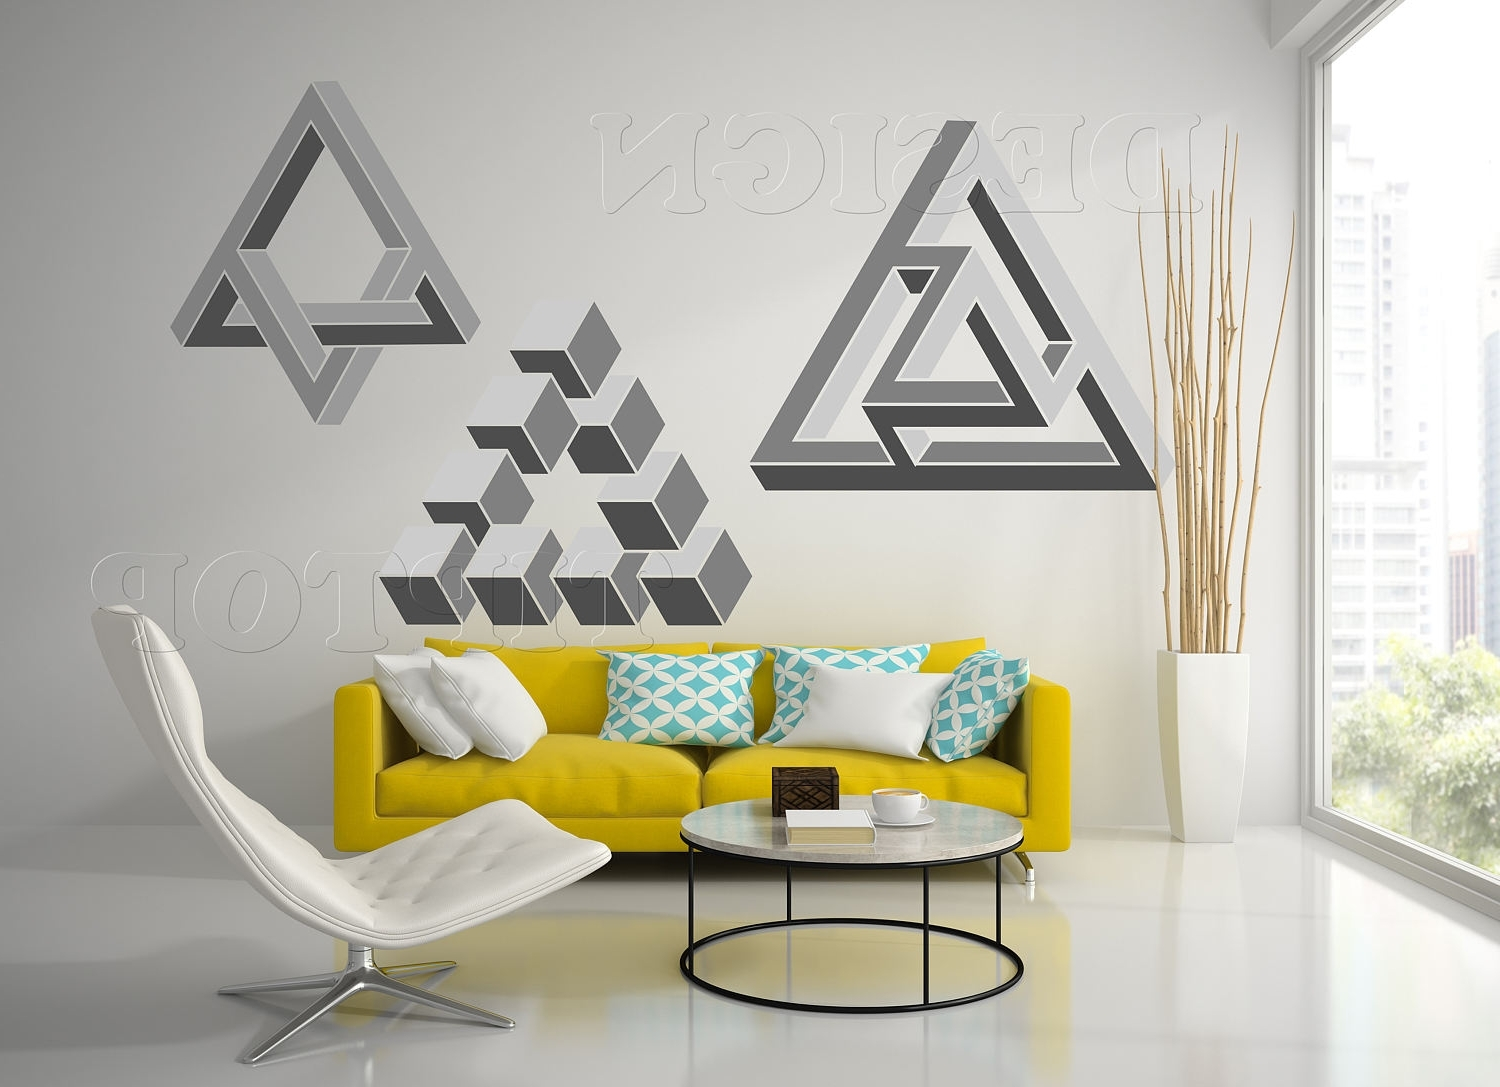 Abstract Wall Art 3D Intended For Most Popular Optical Illusion, 3D Wall Art, 3D Svg, Geometric Wall Art (View 2 of 15)